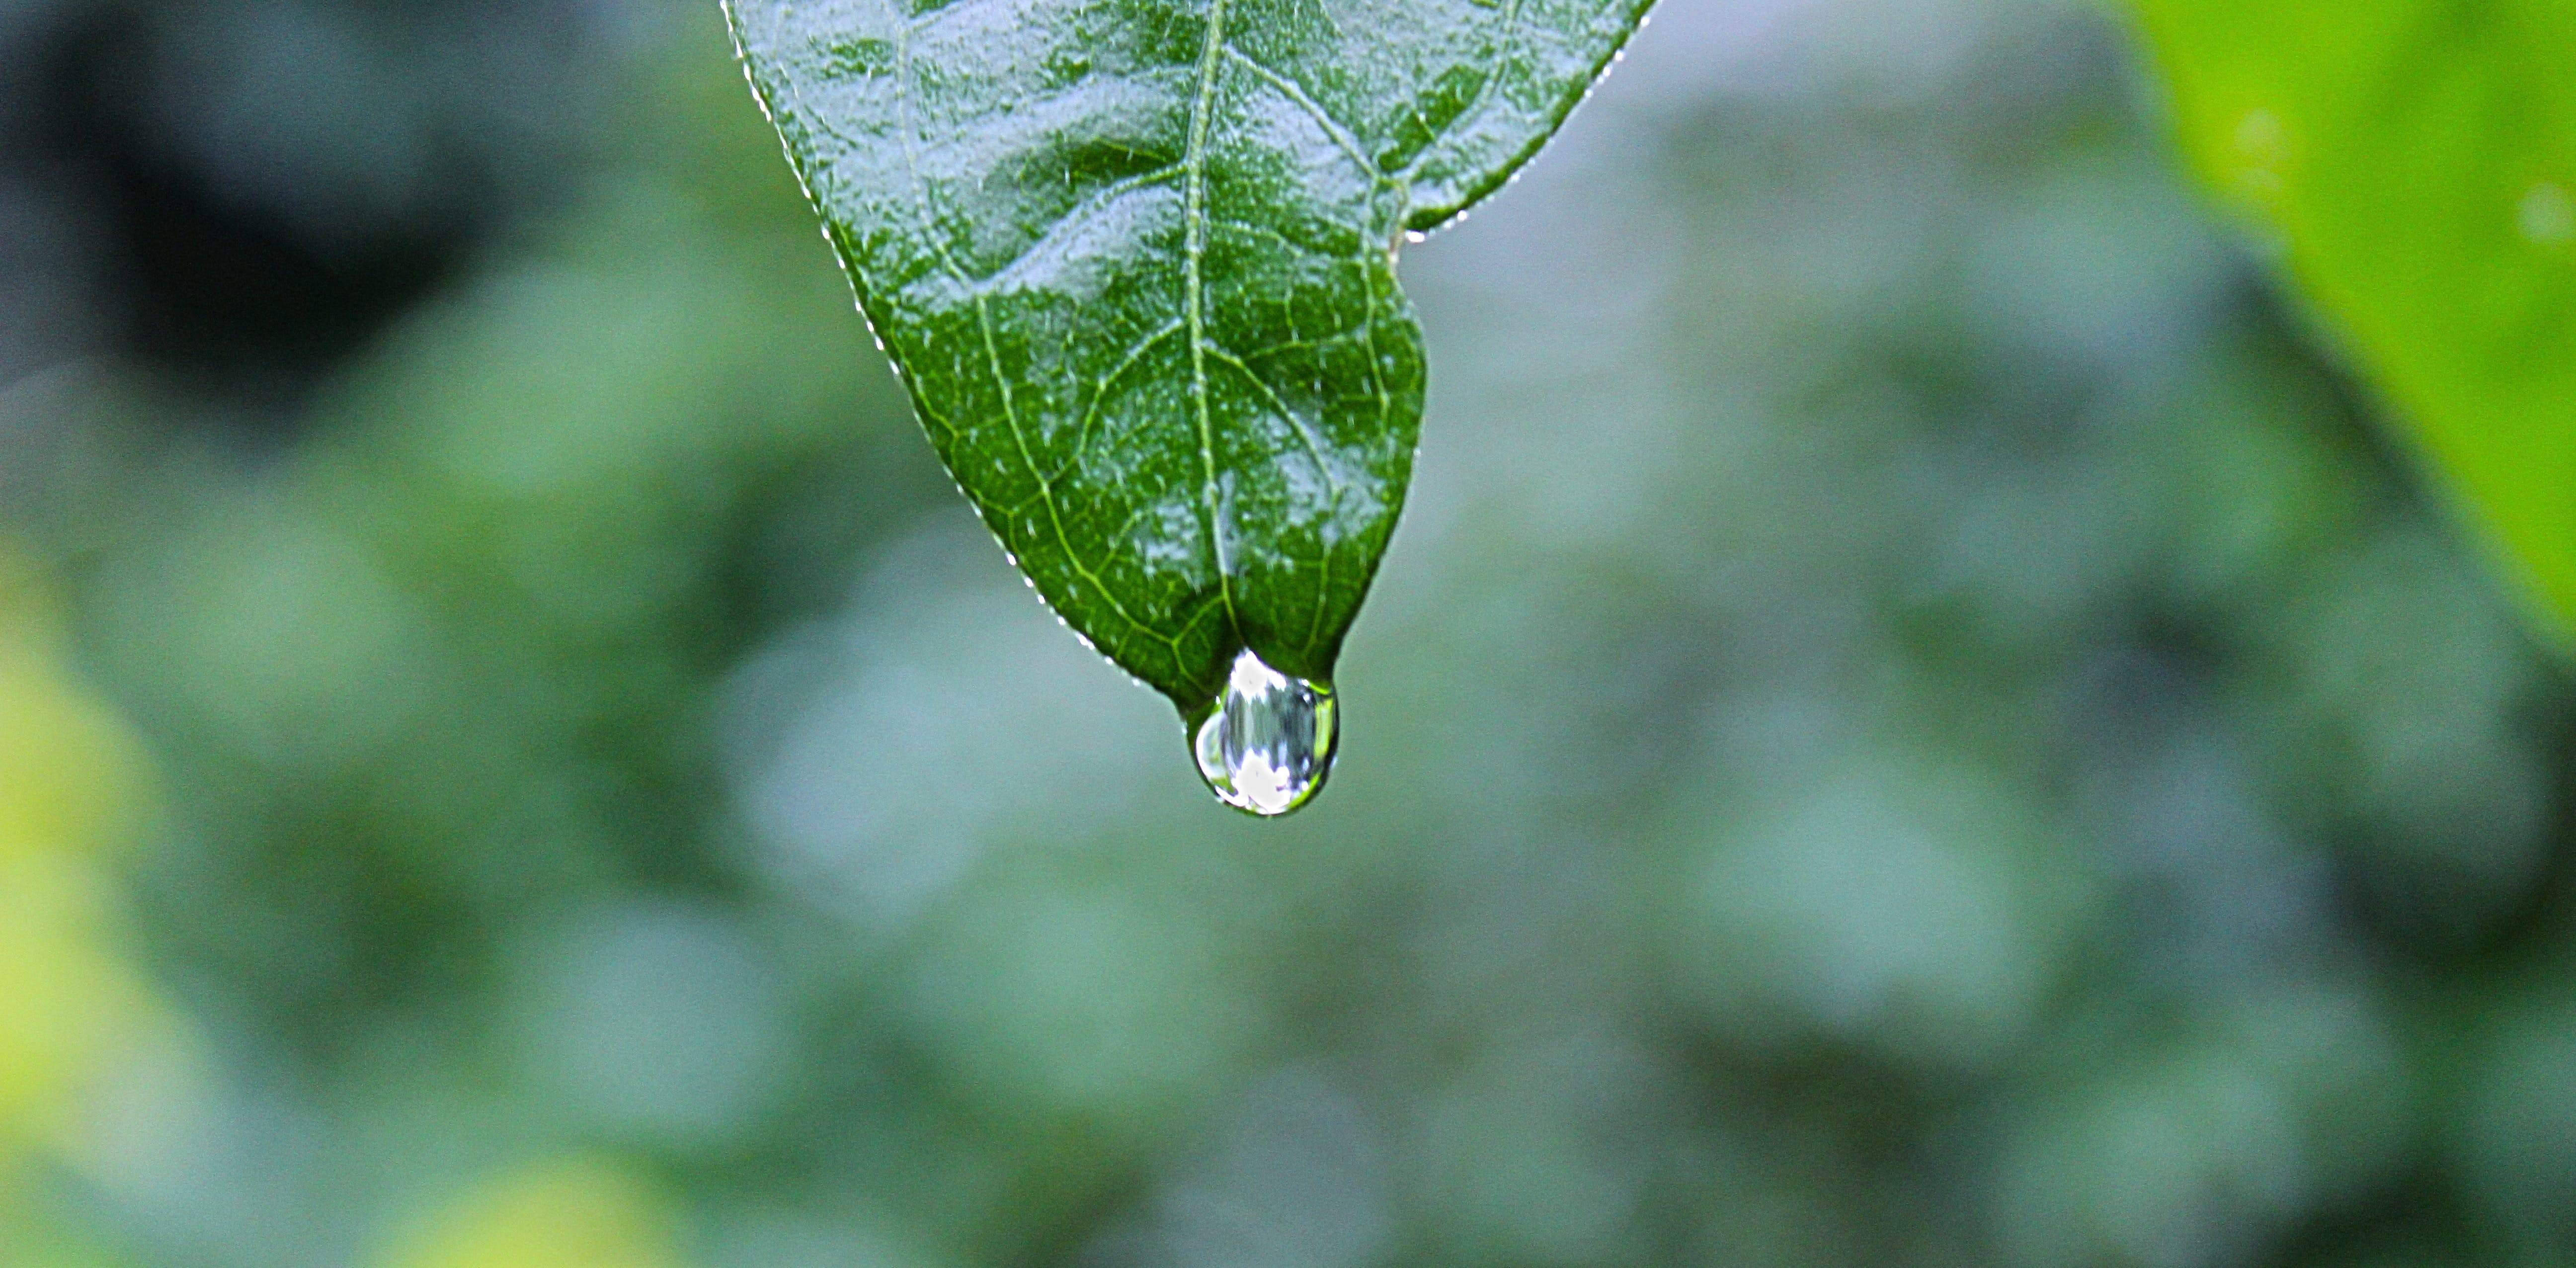 Free stock photo of water, leaf, green, raining